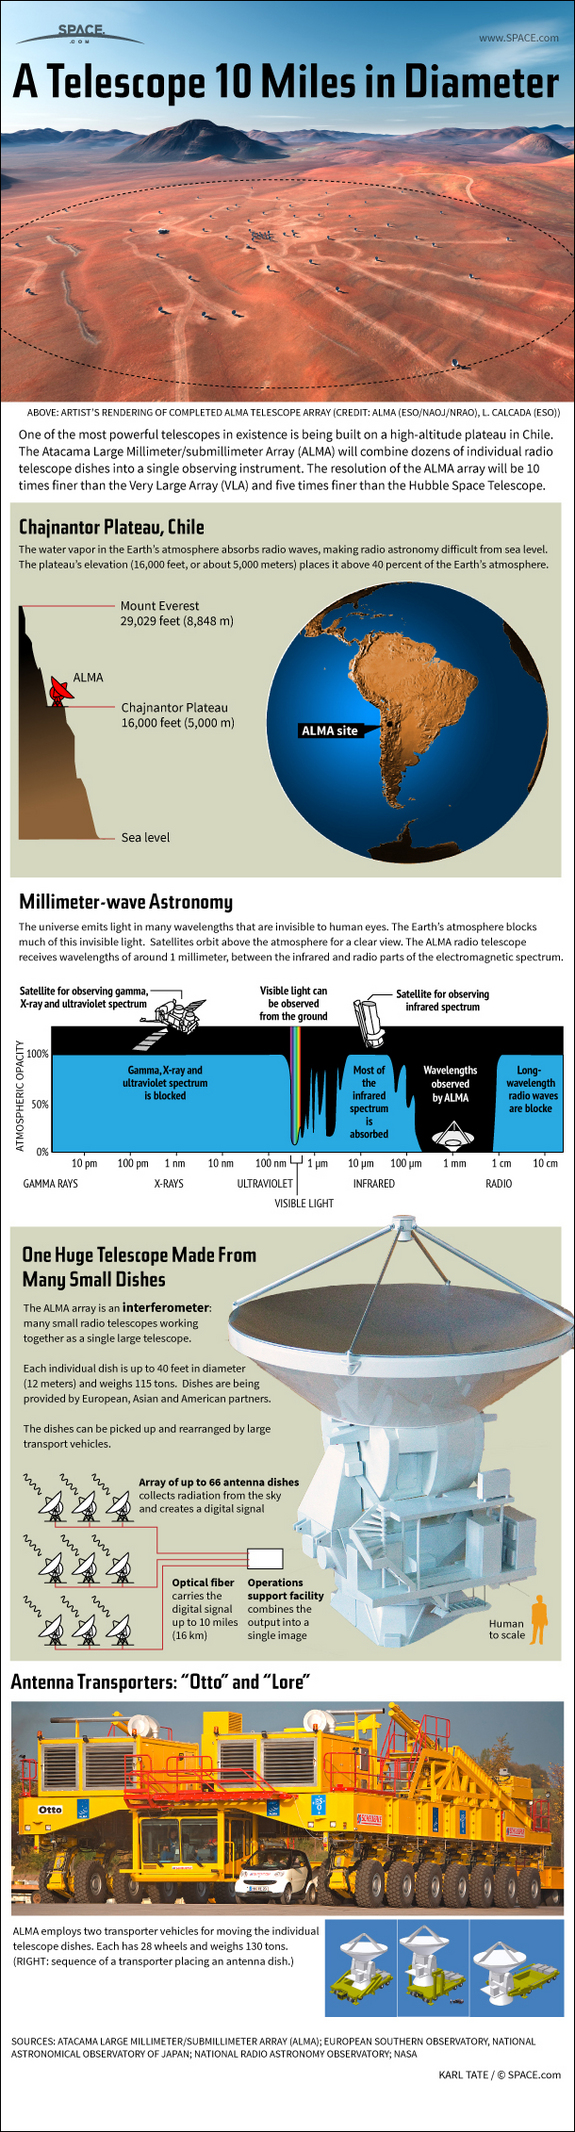 Find out how the huge ALMA radio telescope in Chile works, in this SPACE.com Infographic.